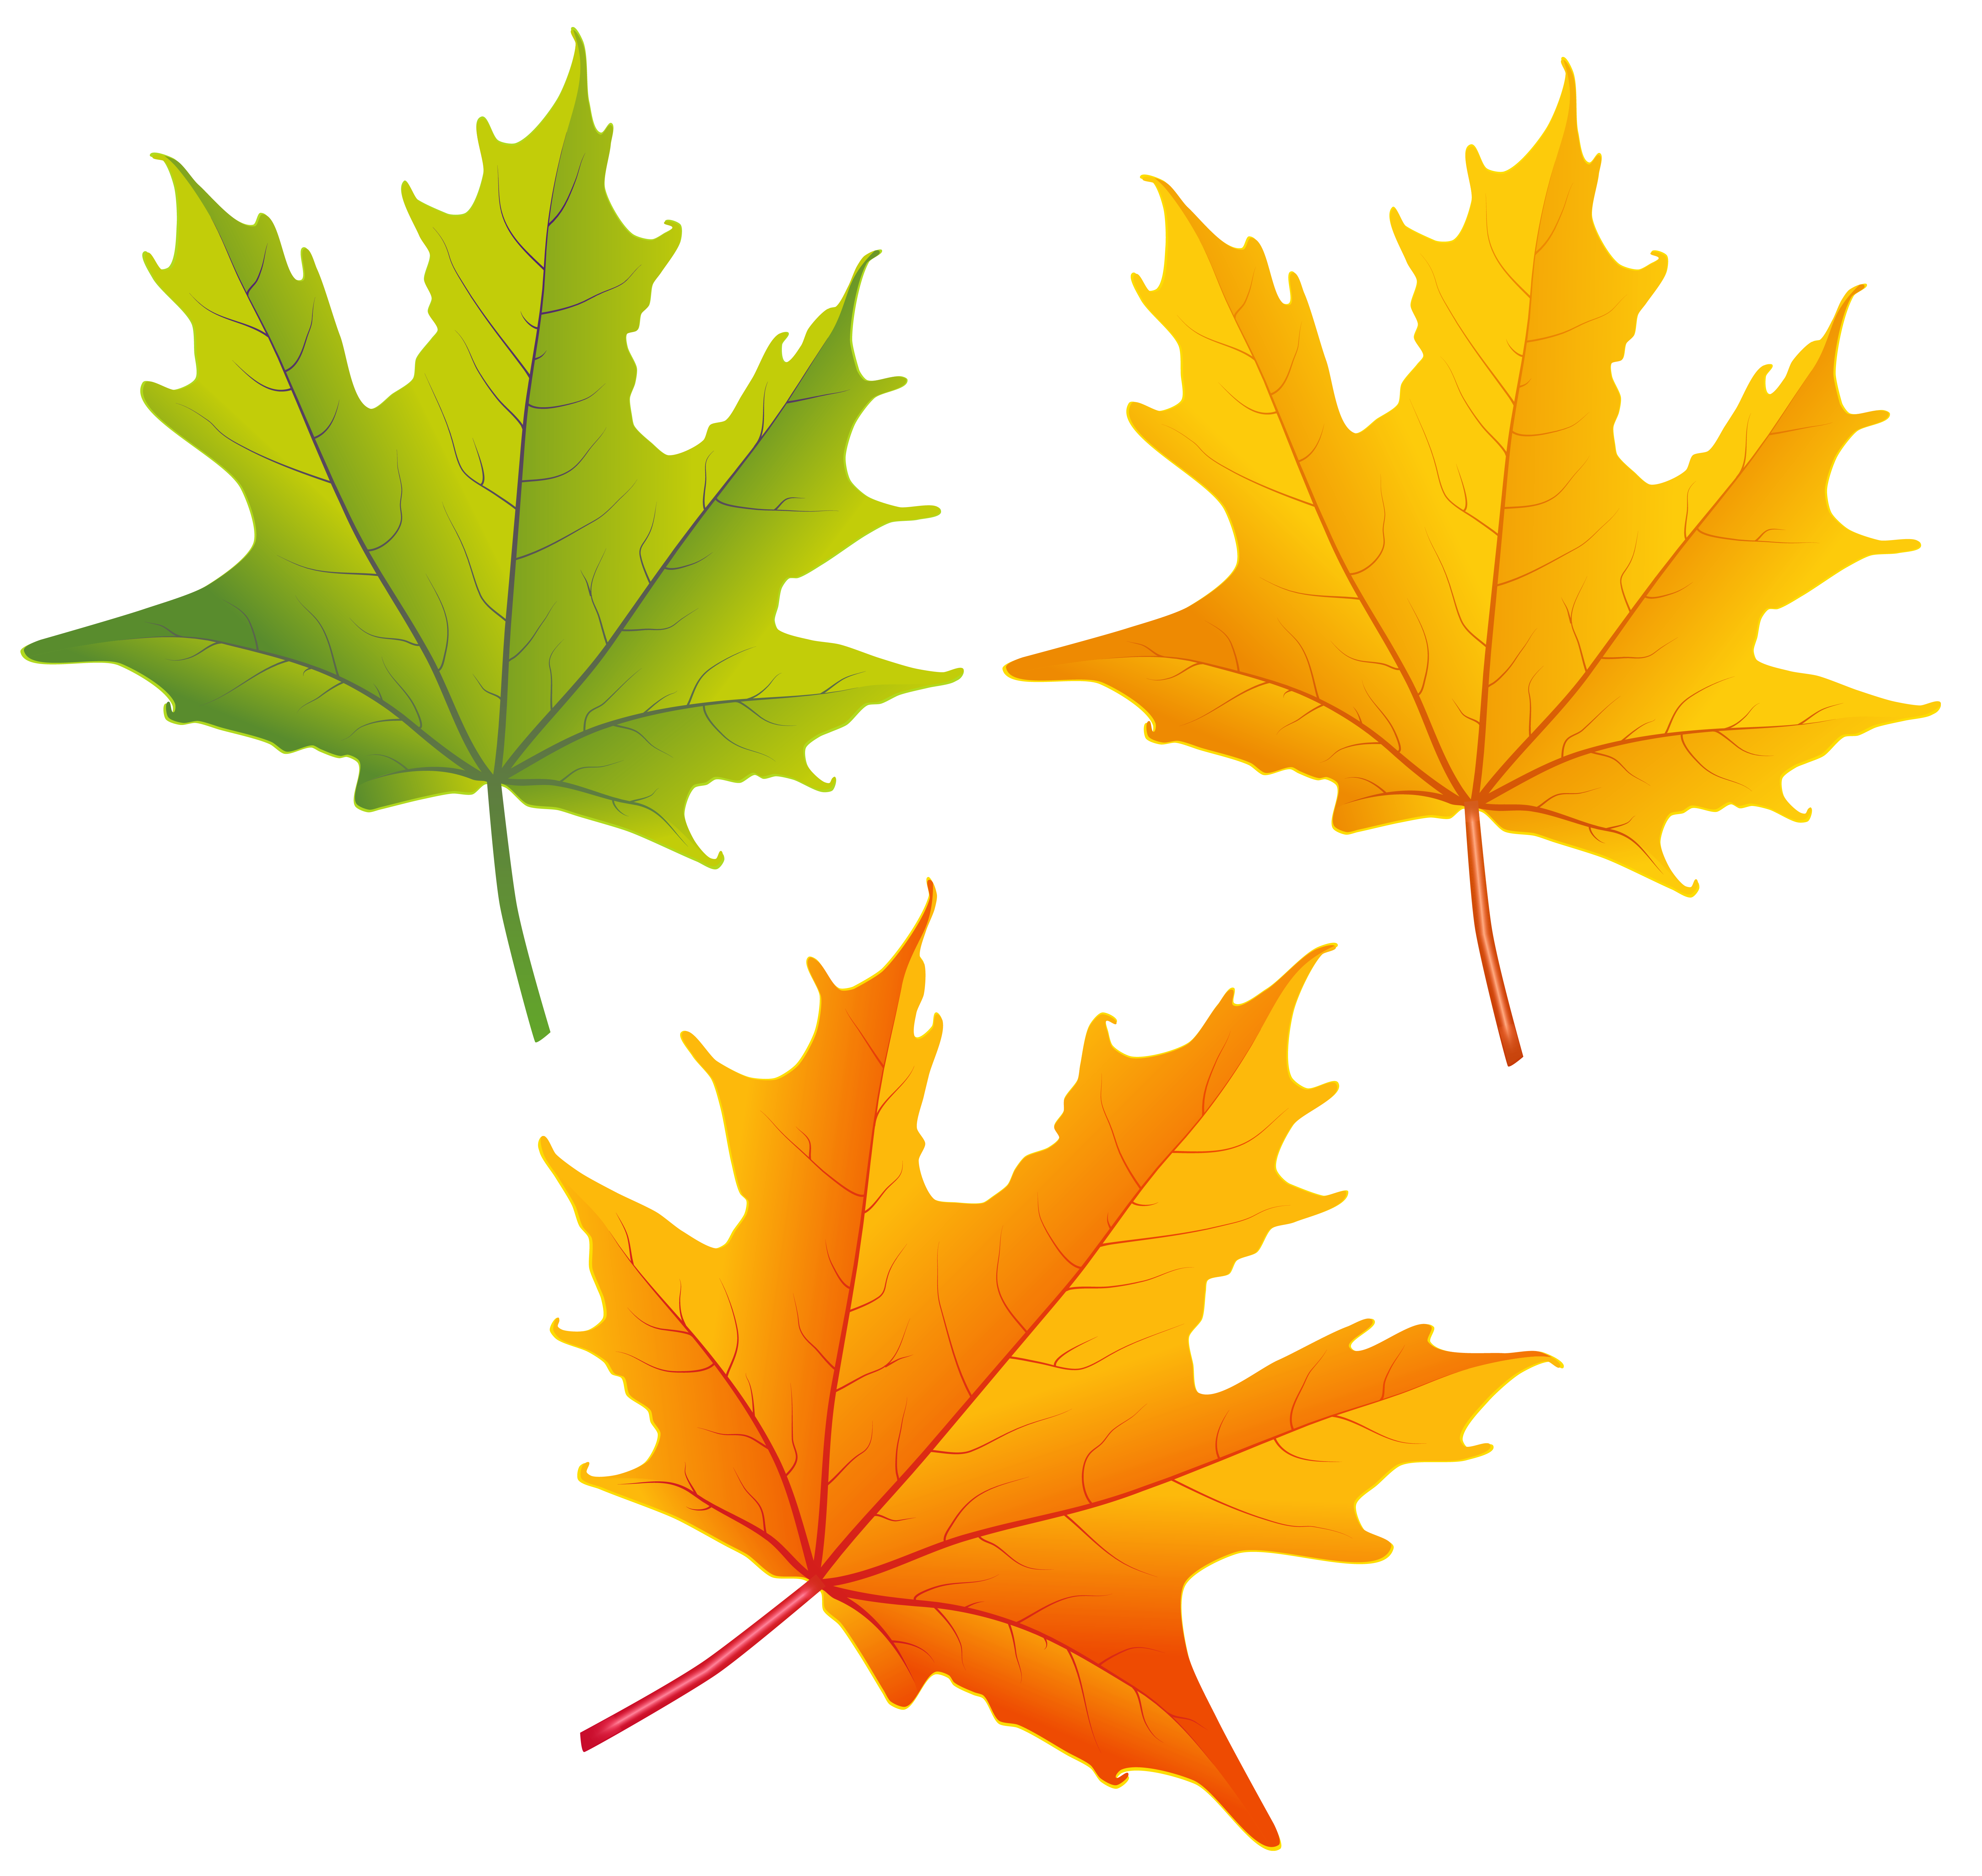 Clip Art Autumn Leaves Yellow - ClipArt Best